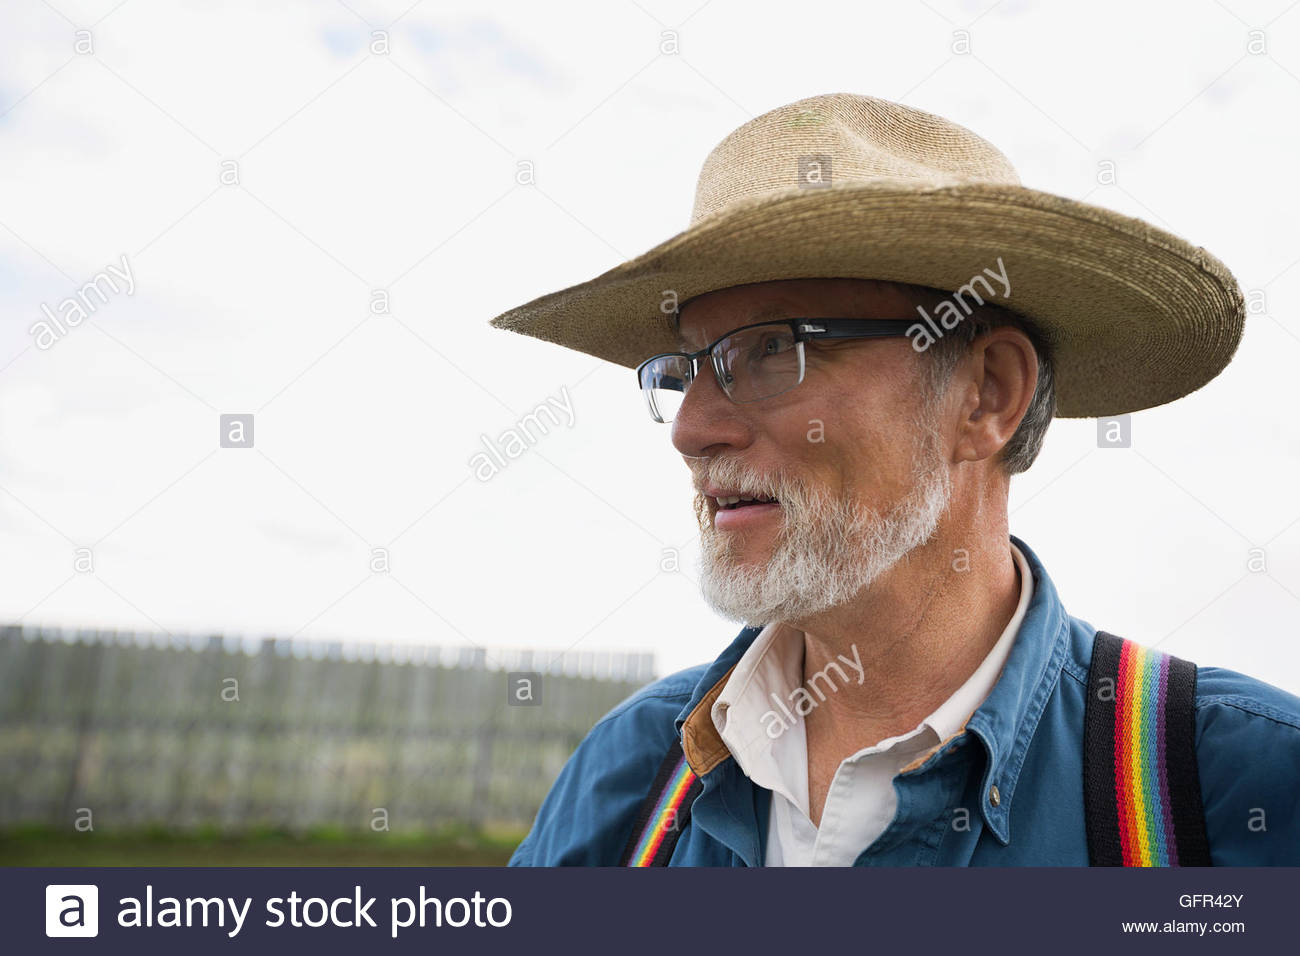 Senior cattle rancher in cowboy hat and suspenders - Stock Image